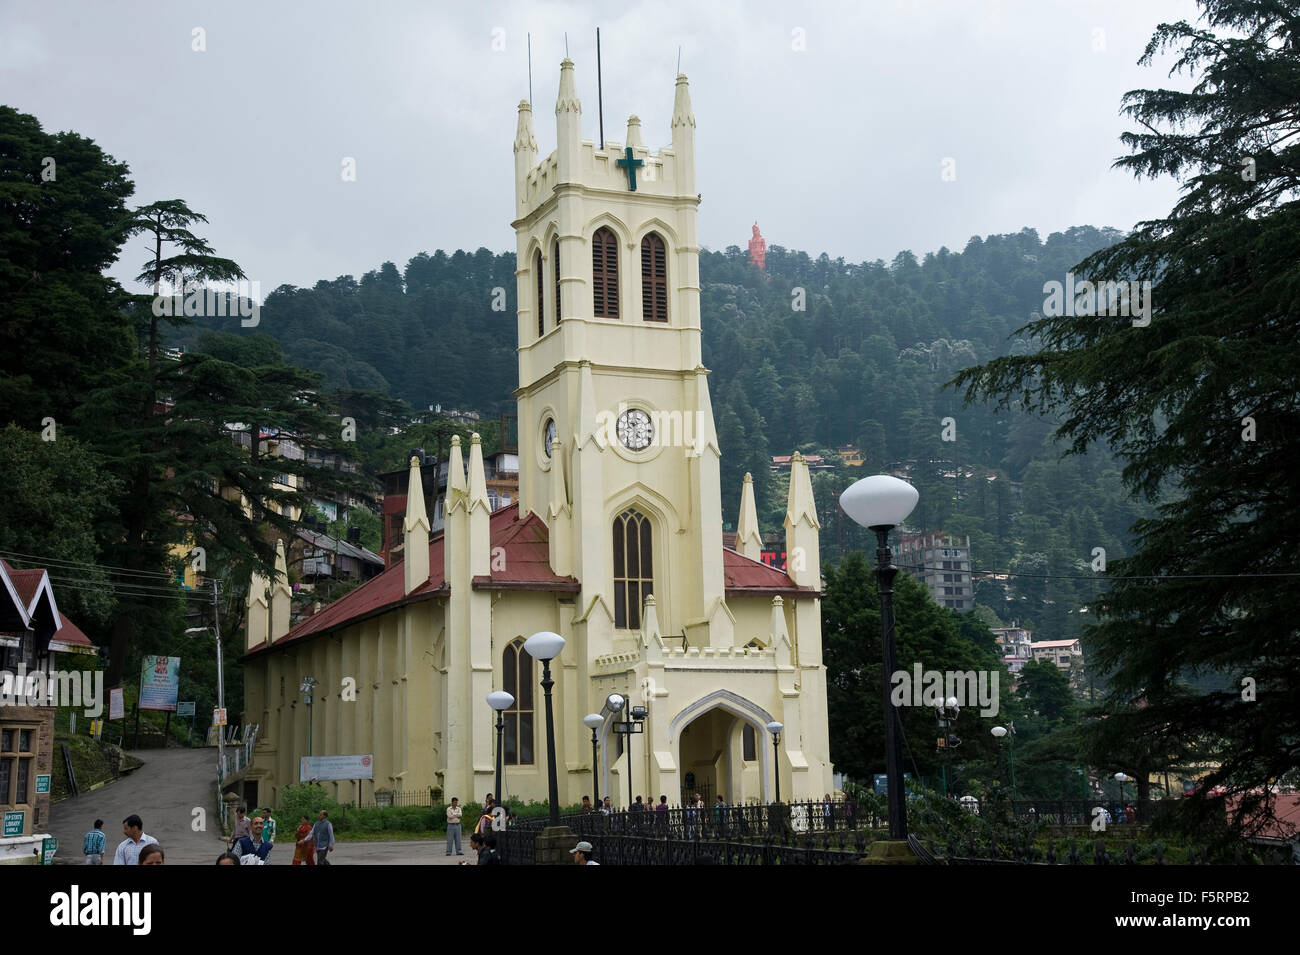 St michaels cathedral, shimla, himachal pradesh, india, asia - Stock Image